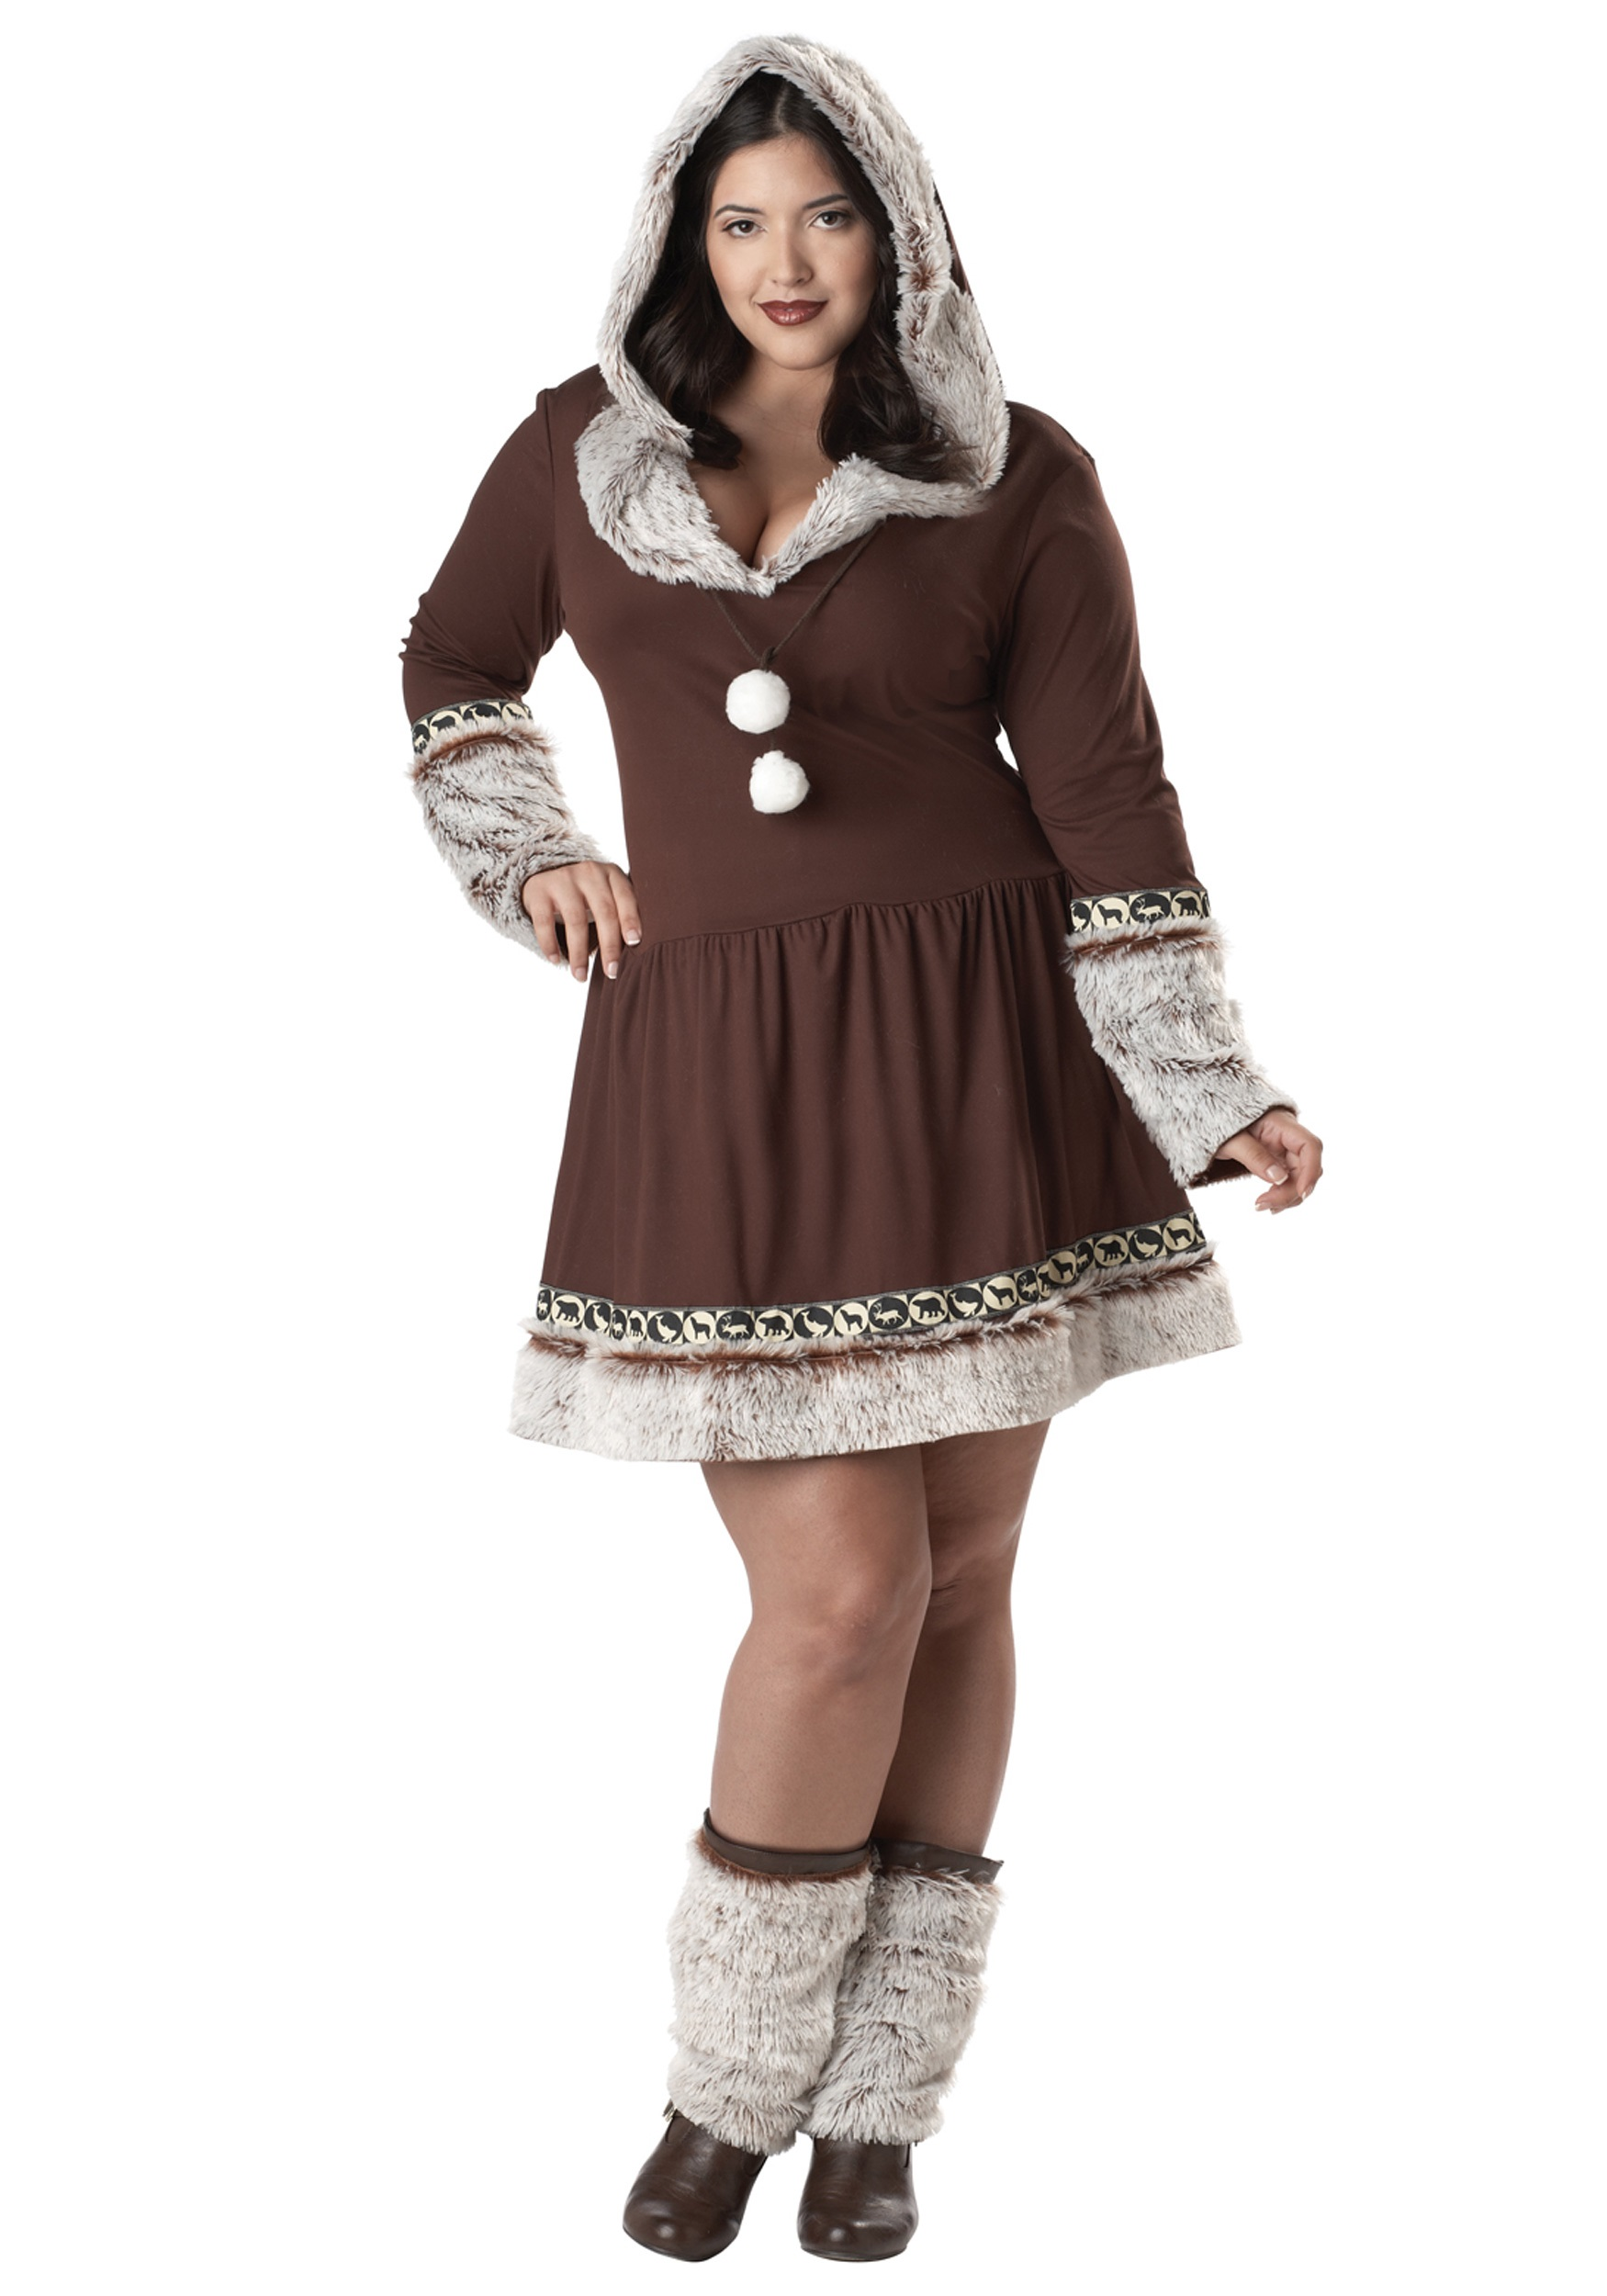 Sexy plus size women costumes